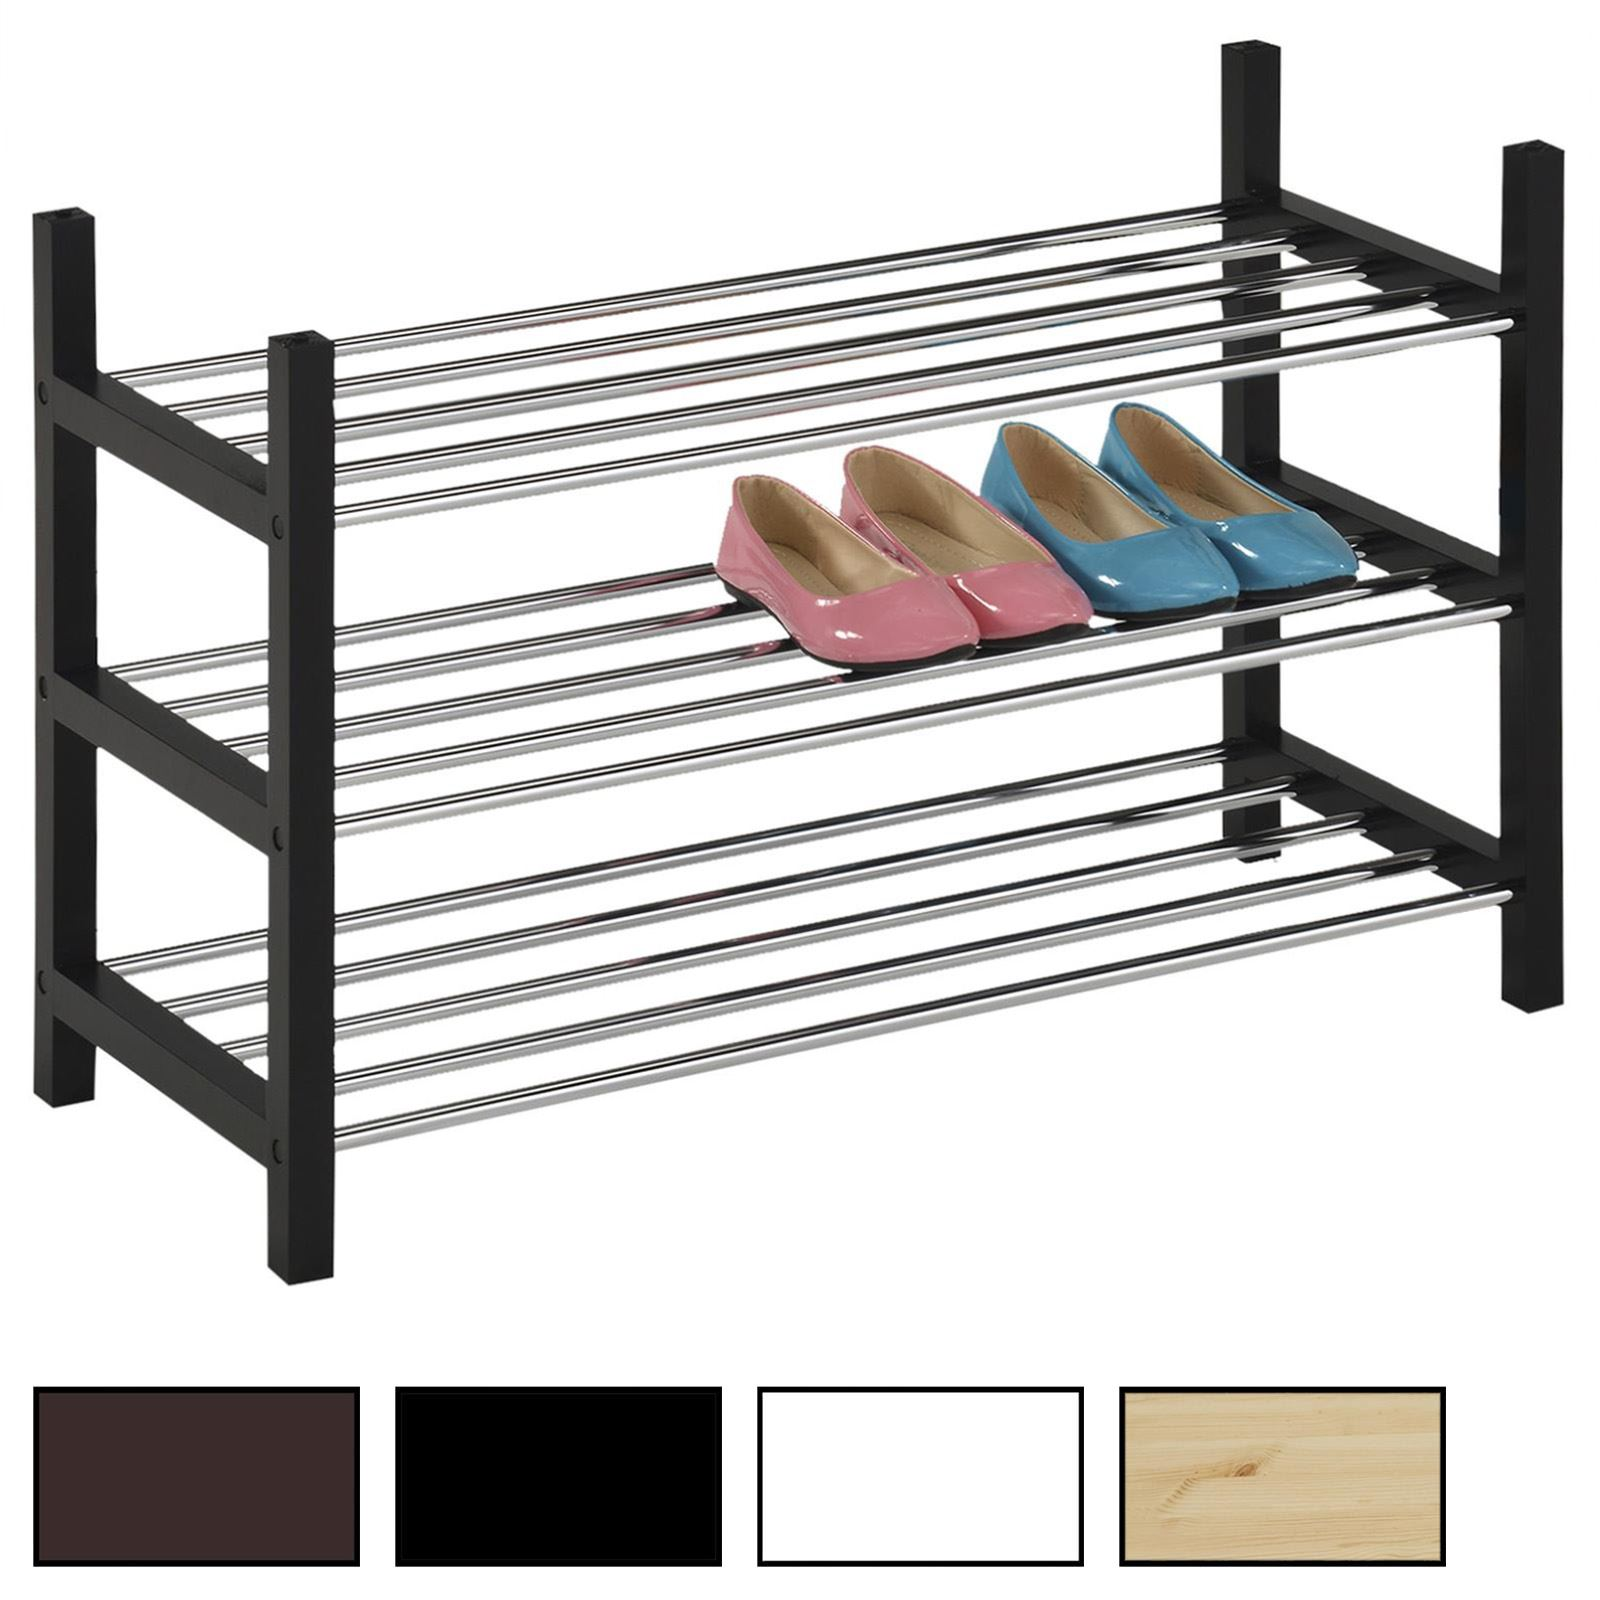 etag re chaussures resa 3 tablettes 4 coloris disponibles mobil meubles. Black Bedroom Furniture Sets. Home Design Ideas